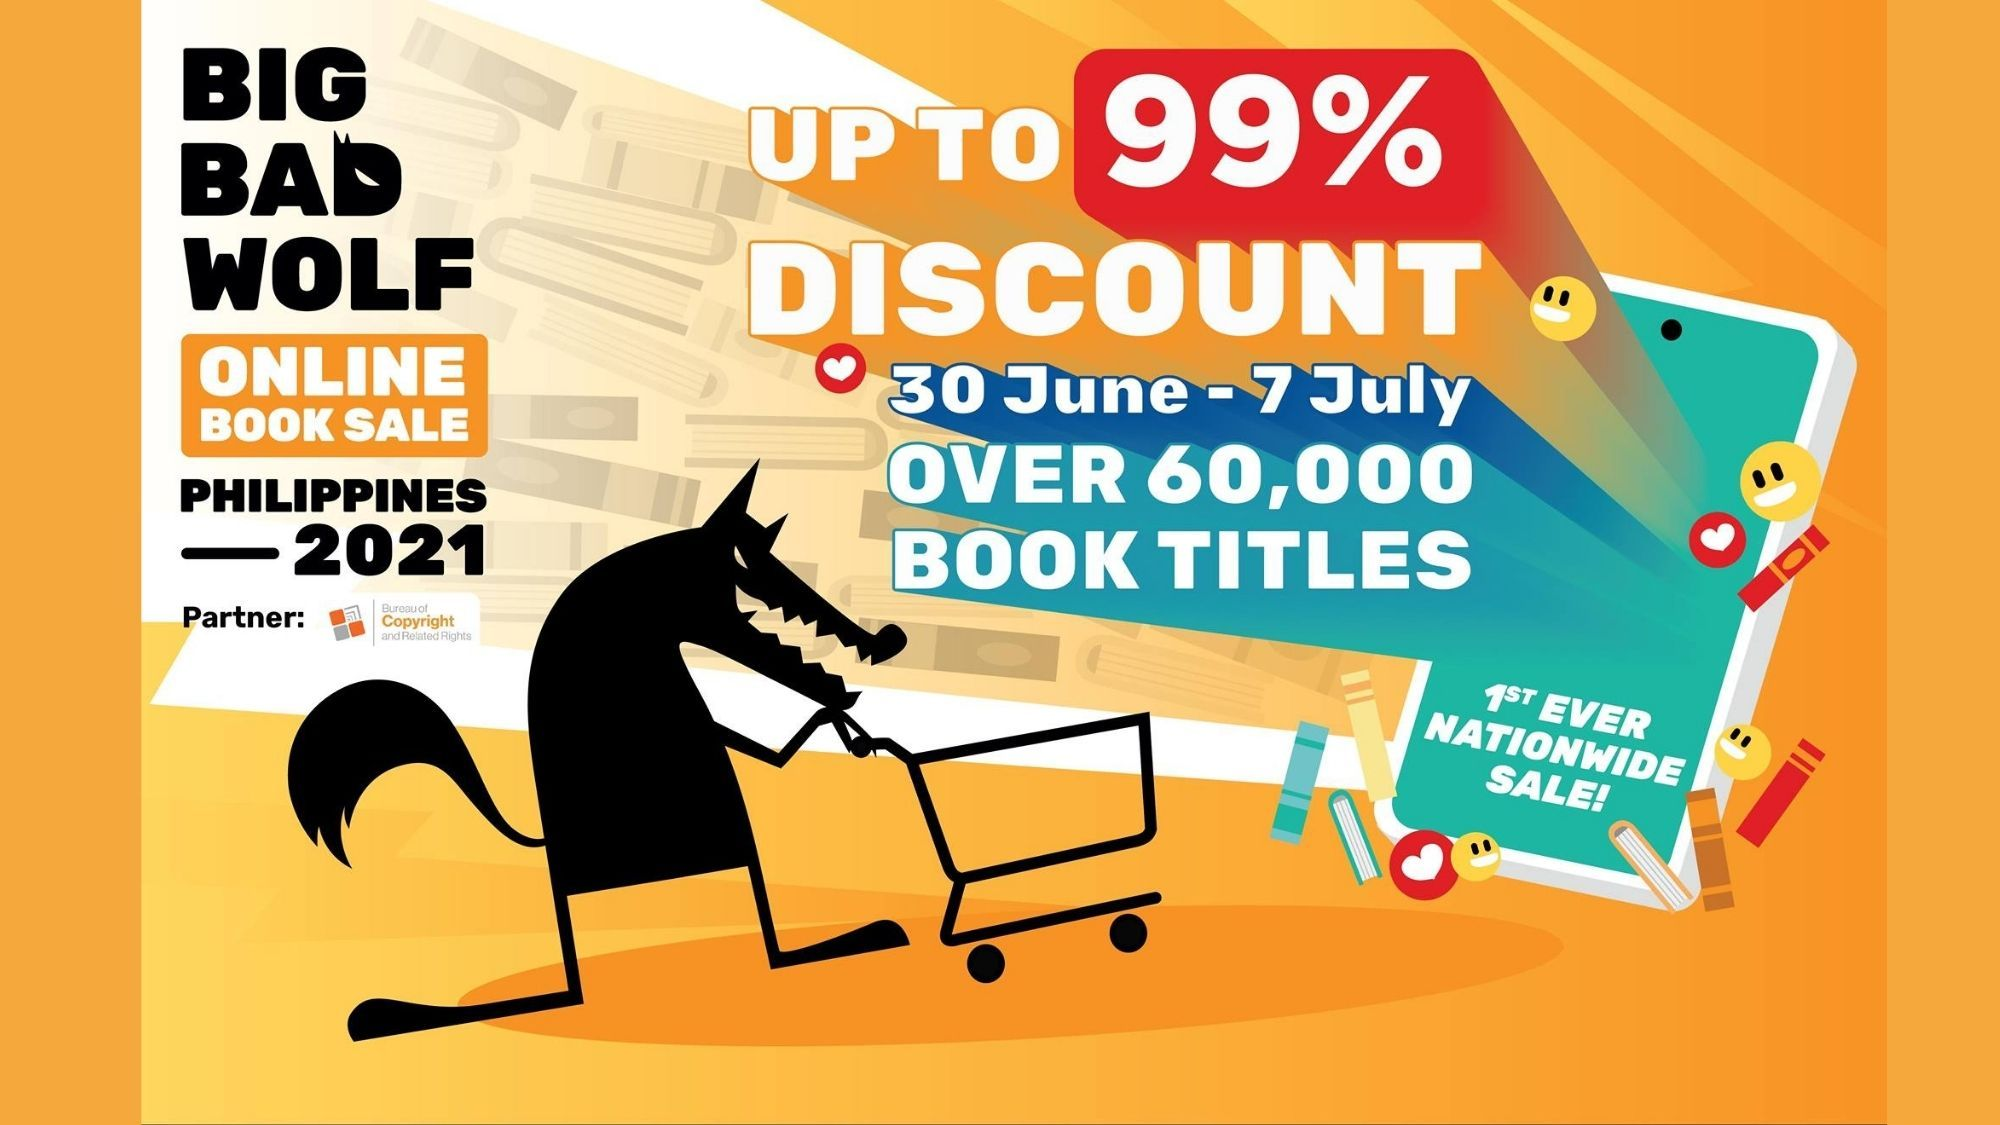 bookworms The Big Bad Wolf book sale is back